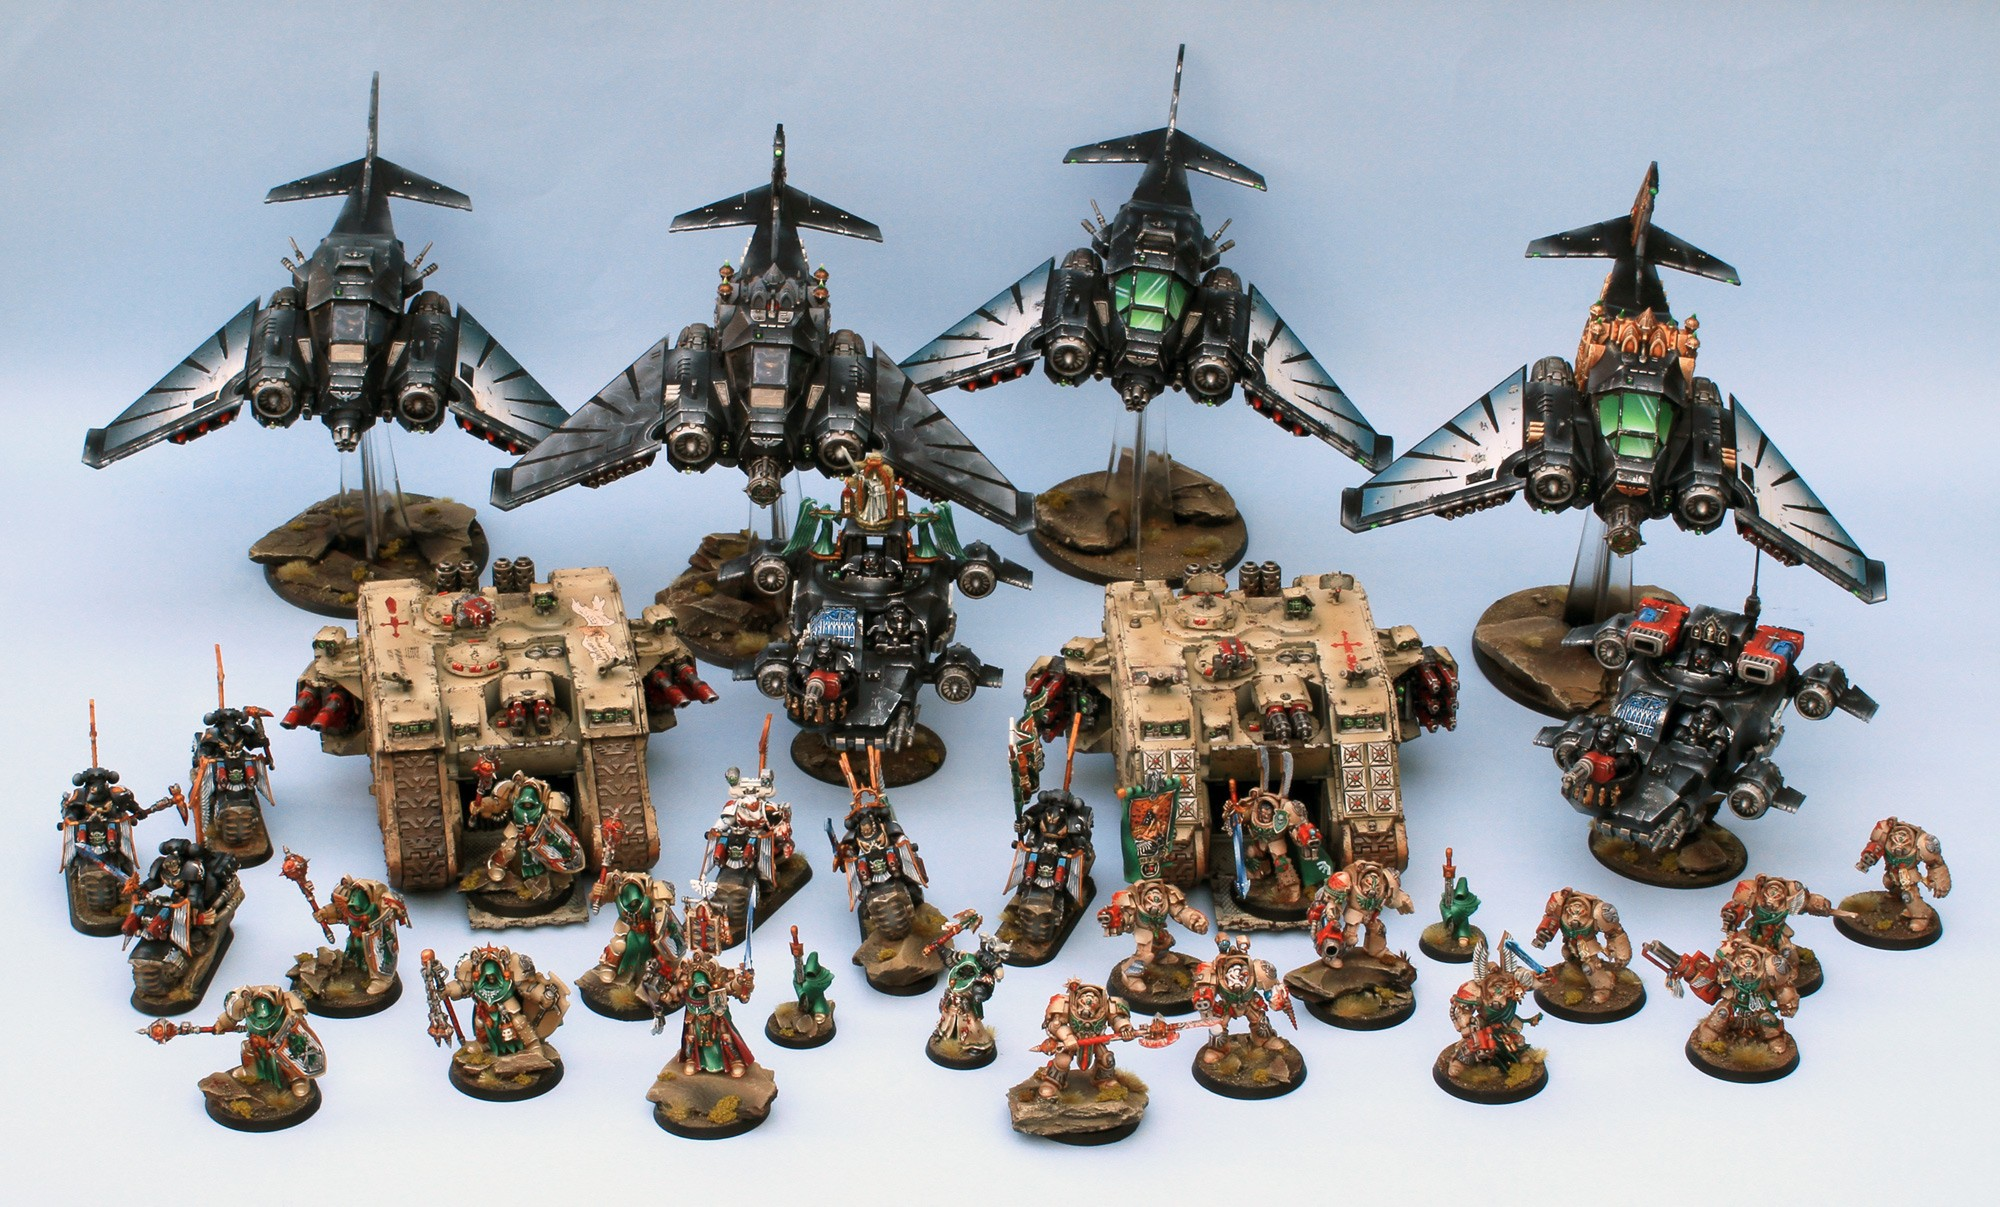 A mighty Dark Angels detachment, combining Ravenwing, Deathwing and character models, painted in a short time period.